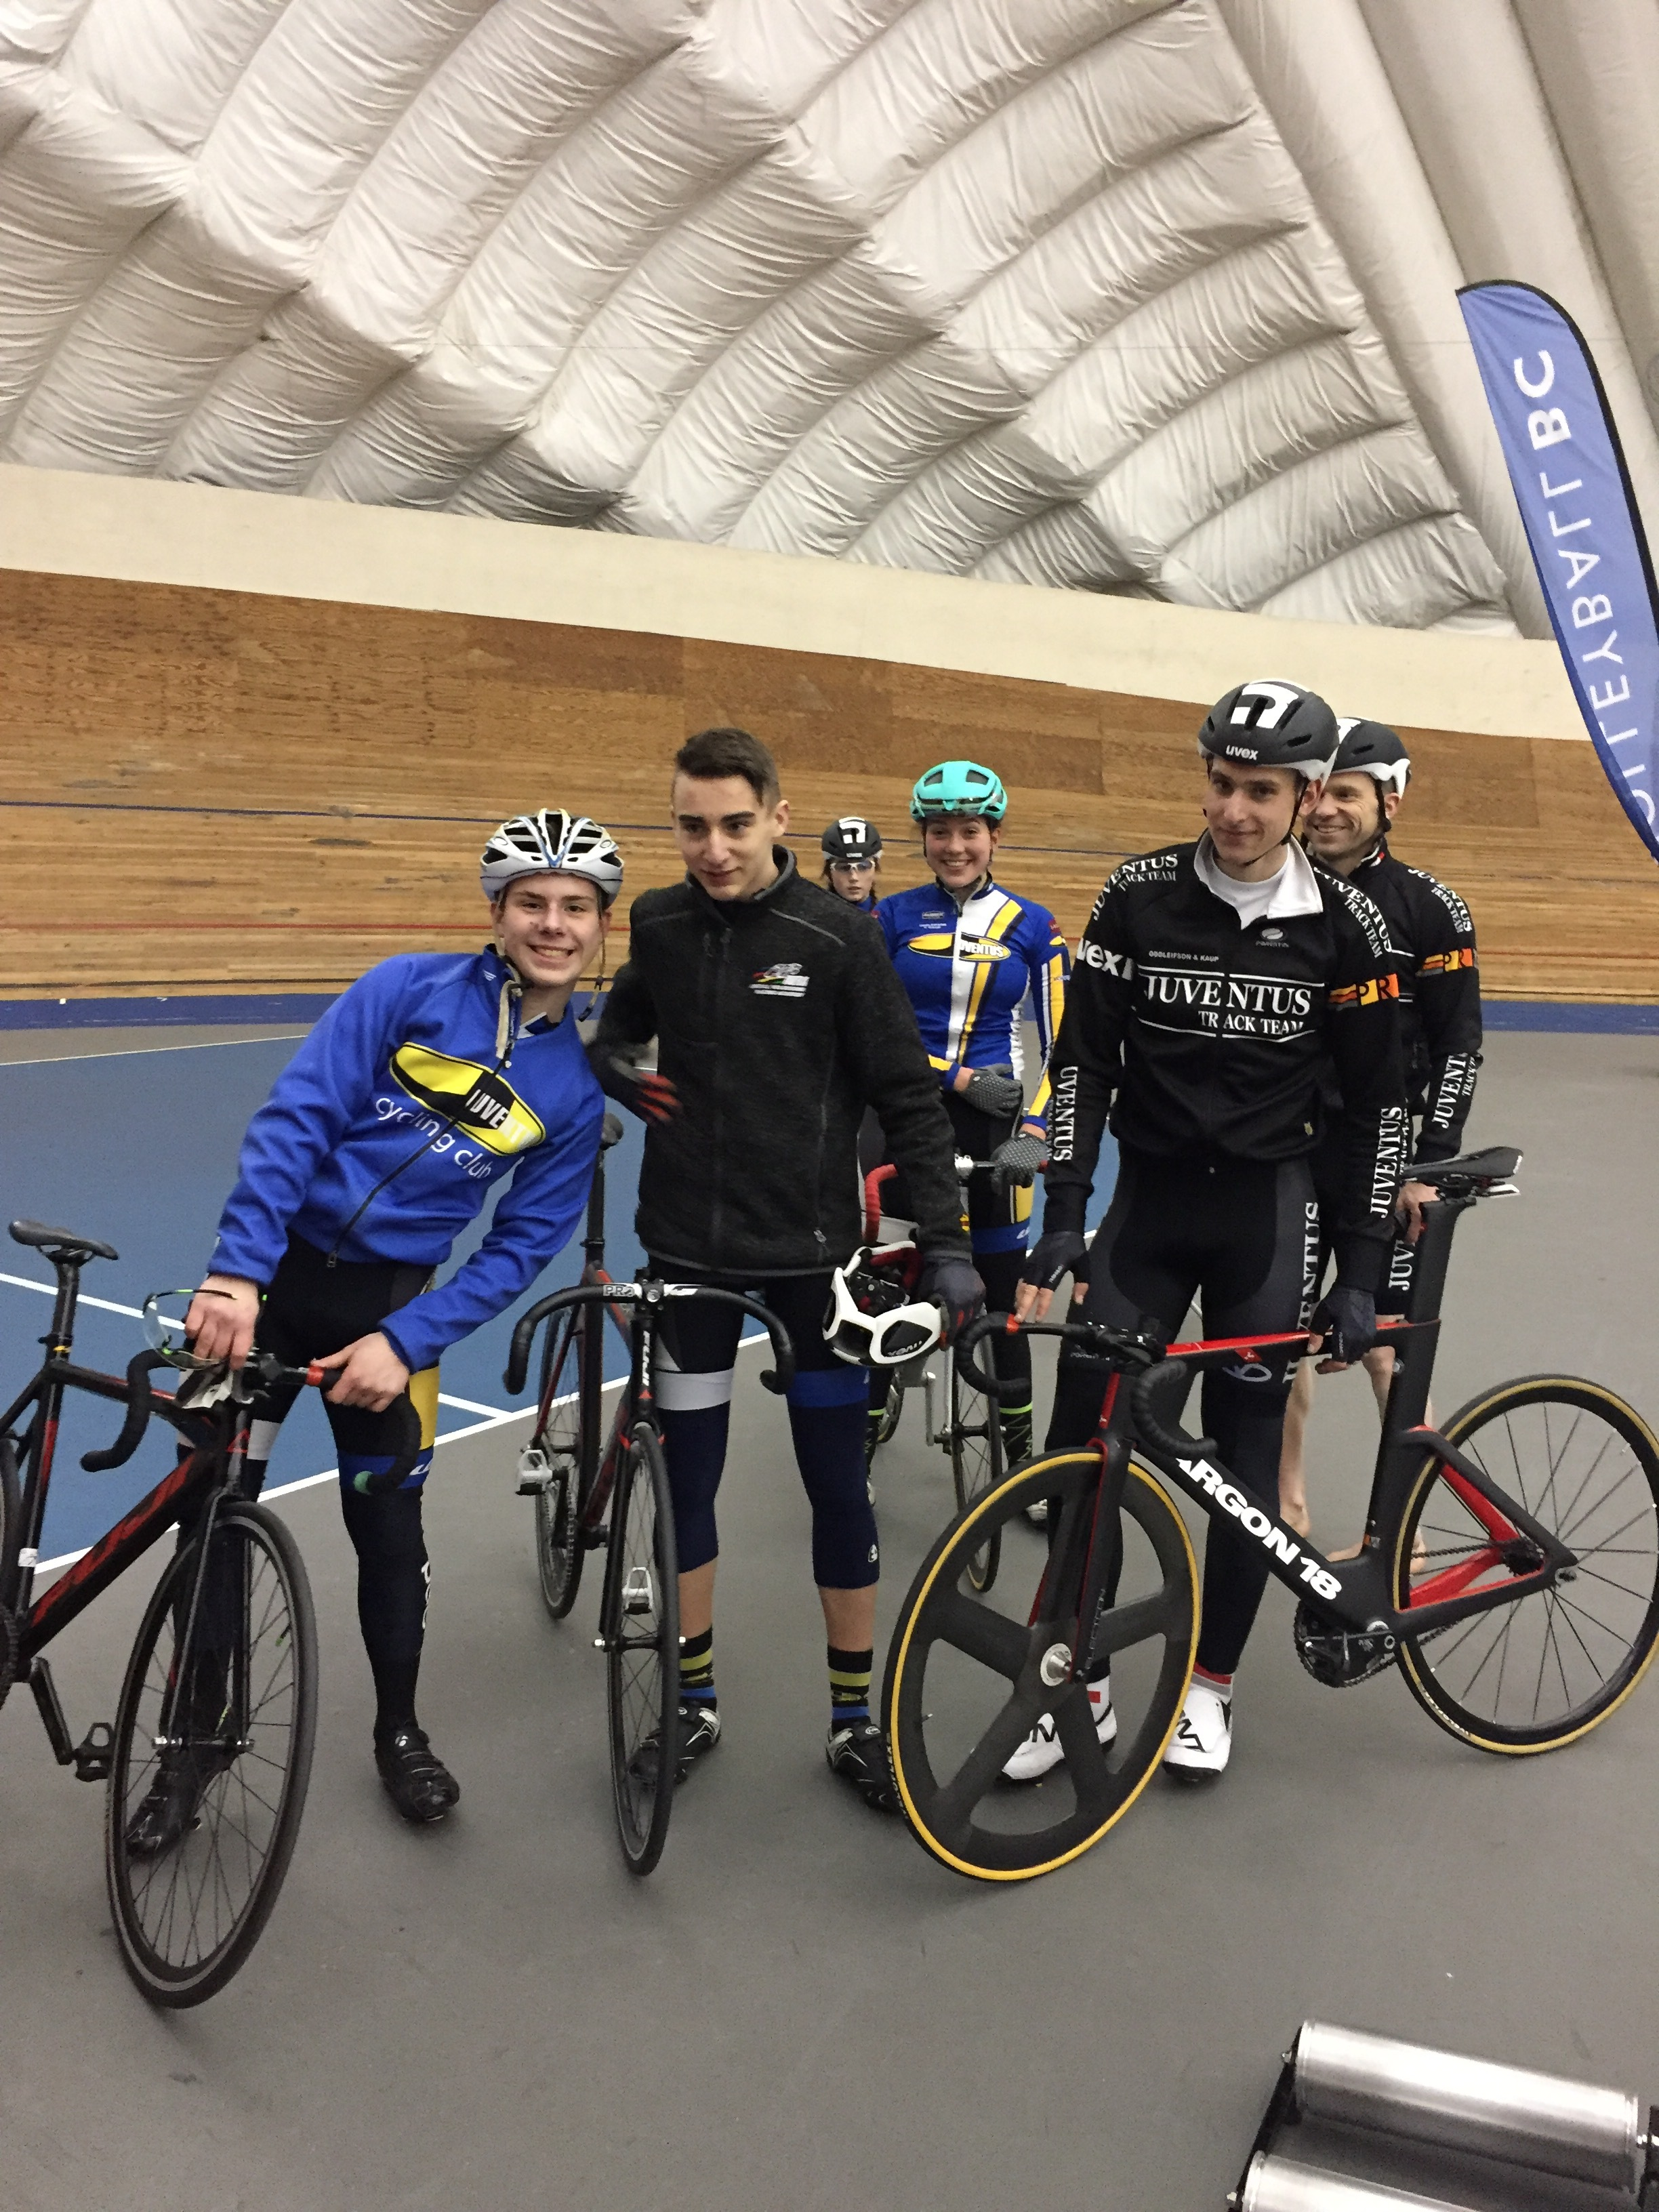 Mini camp dusted, and everyone ready to race!!